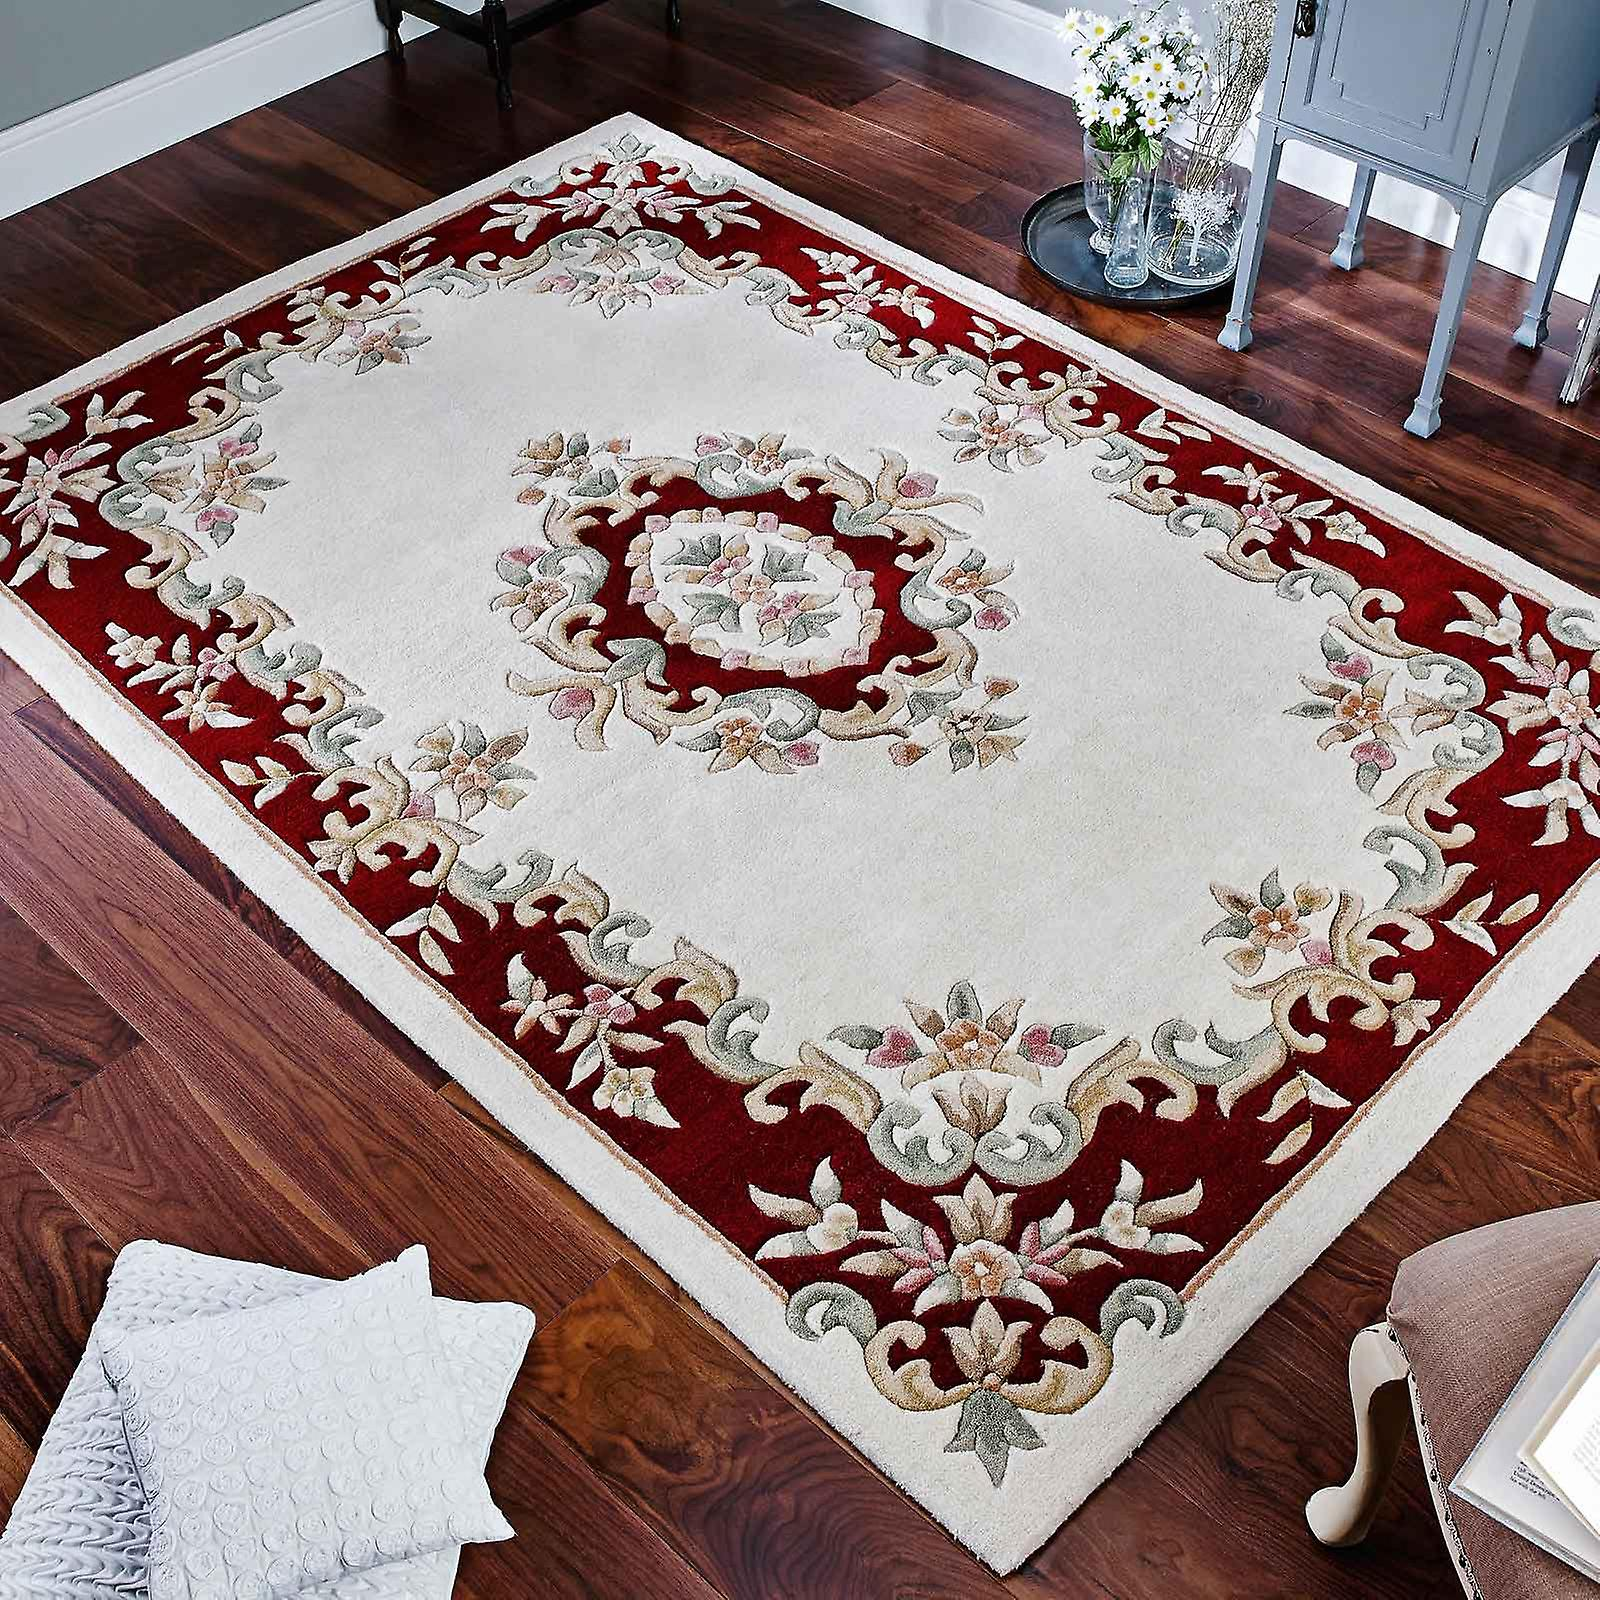 Royal Aubusson Wool Rugs In Cream Red